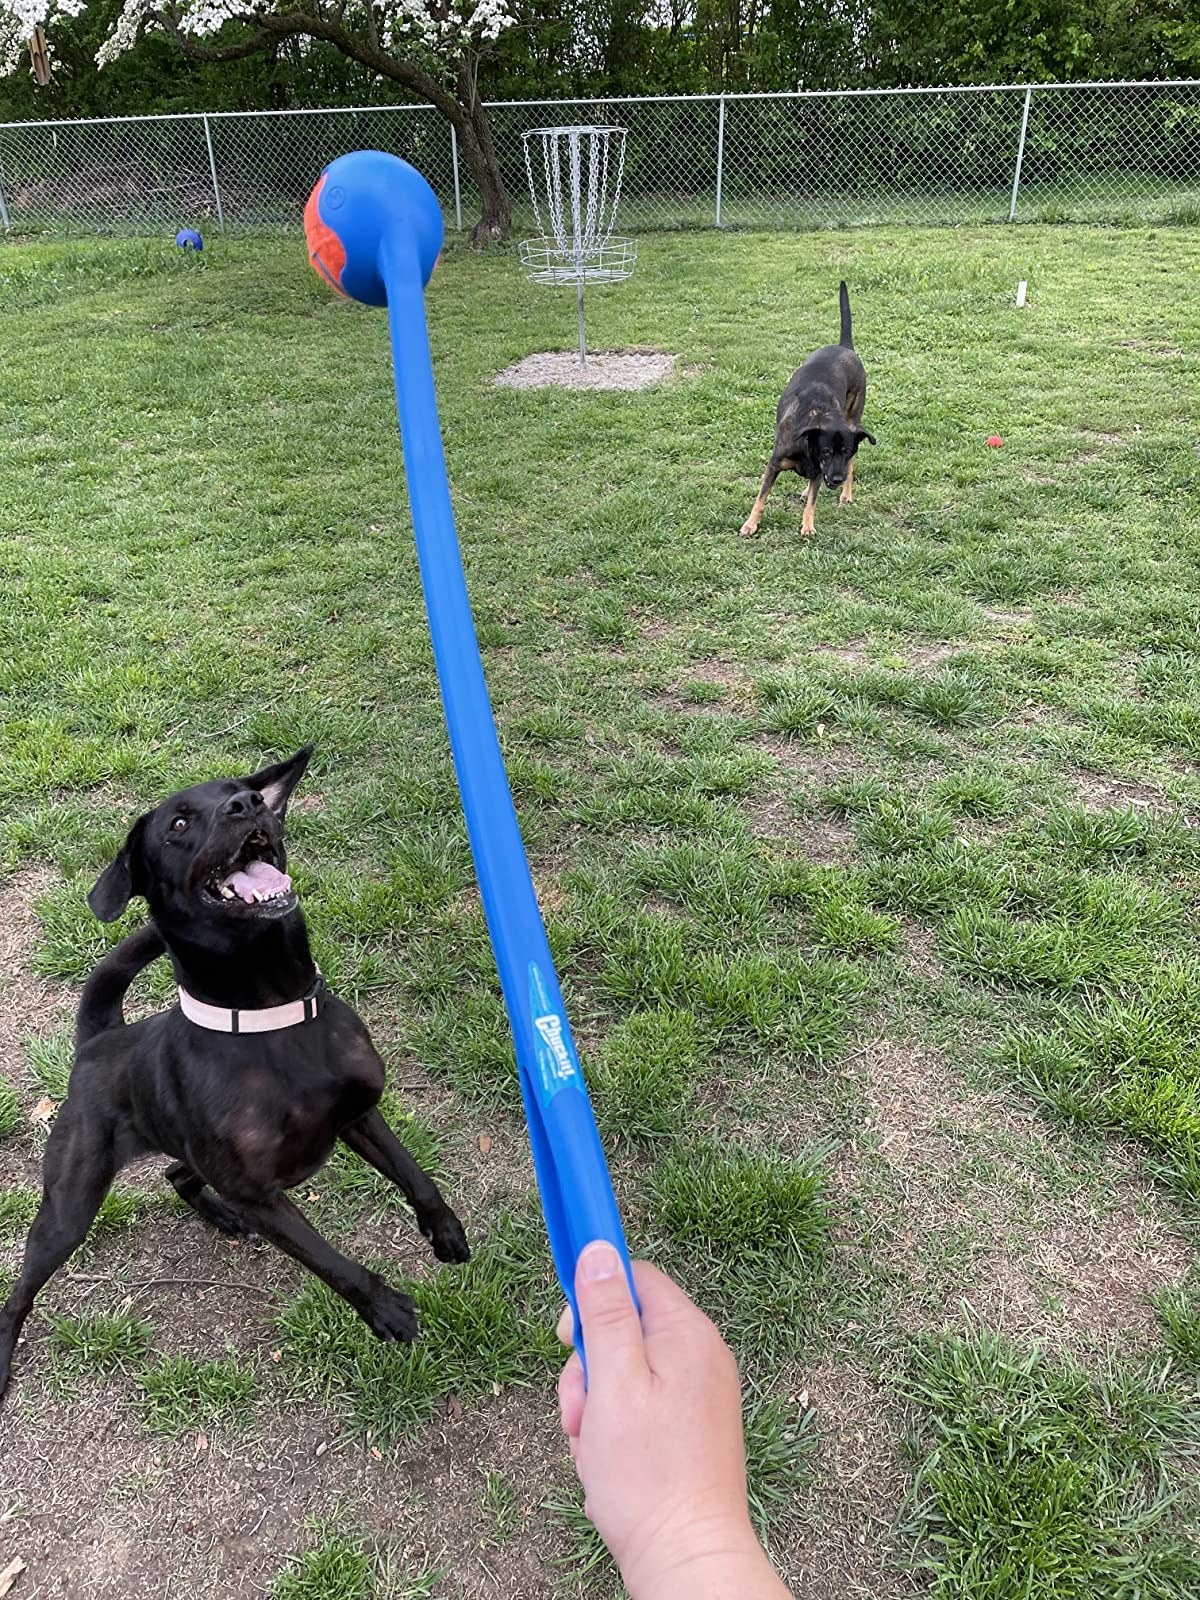 Review photo of dog enjoying the ball launcher